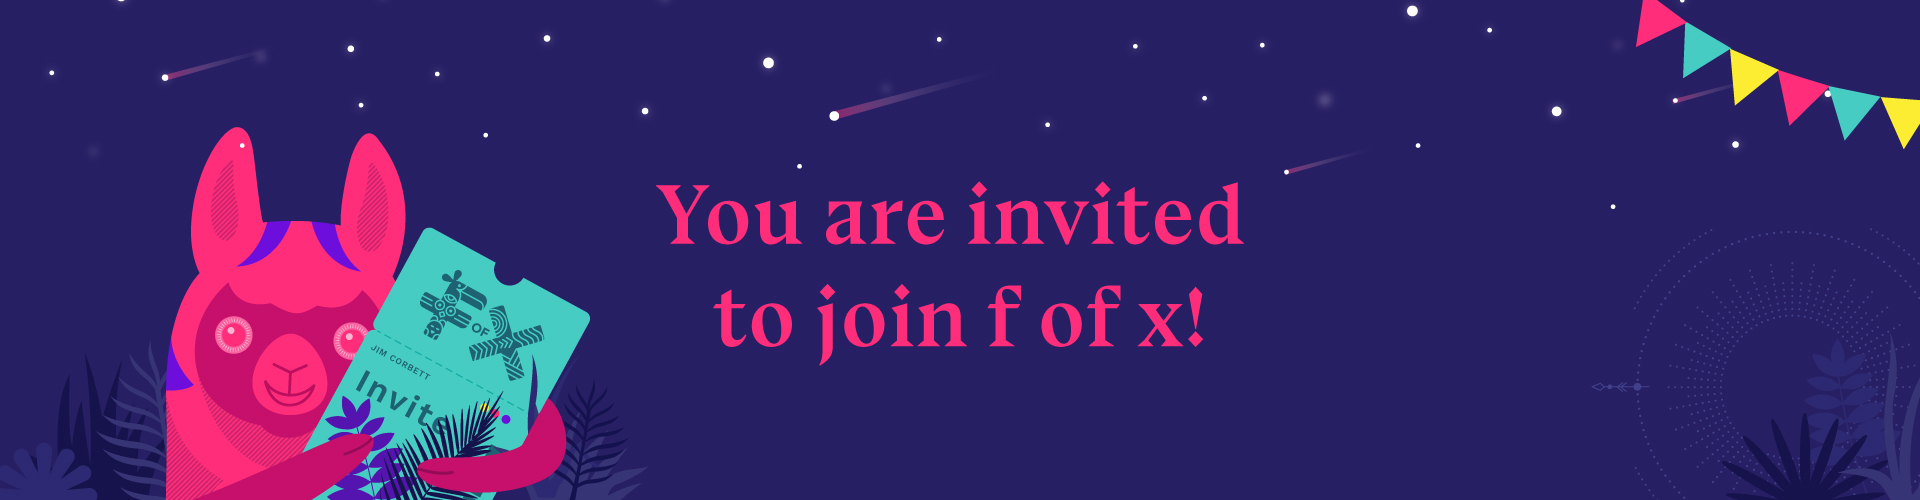 You-are-invited.jpg